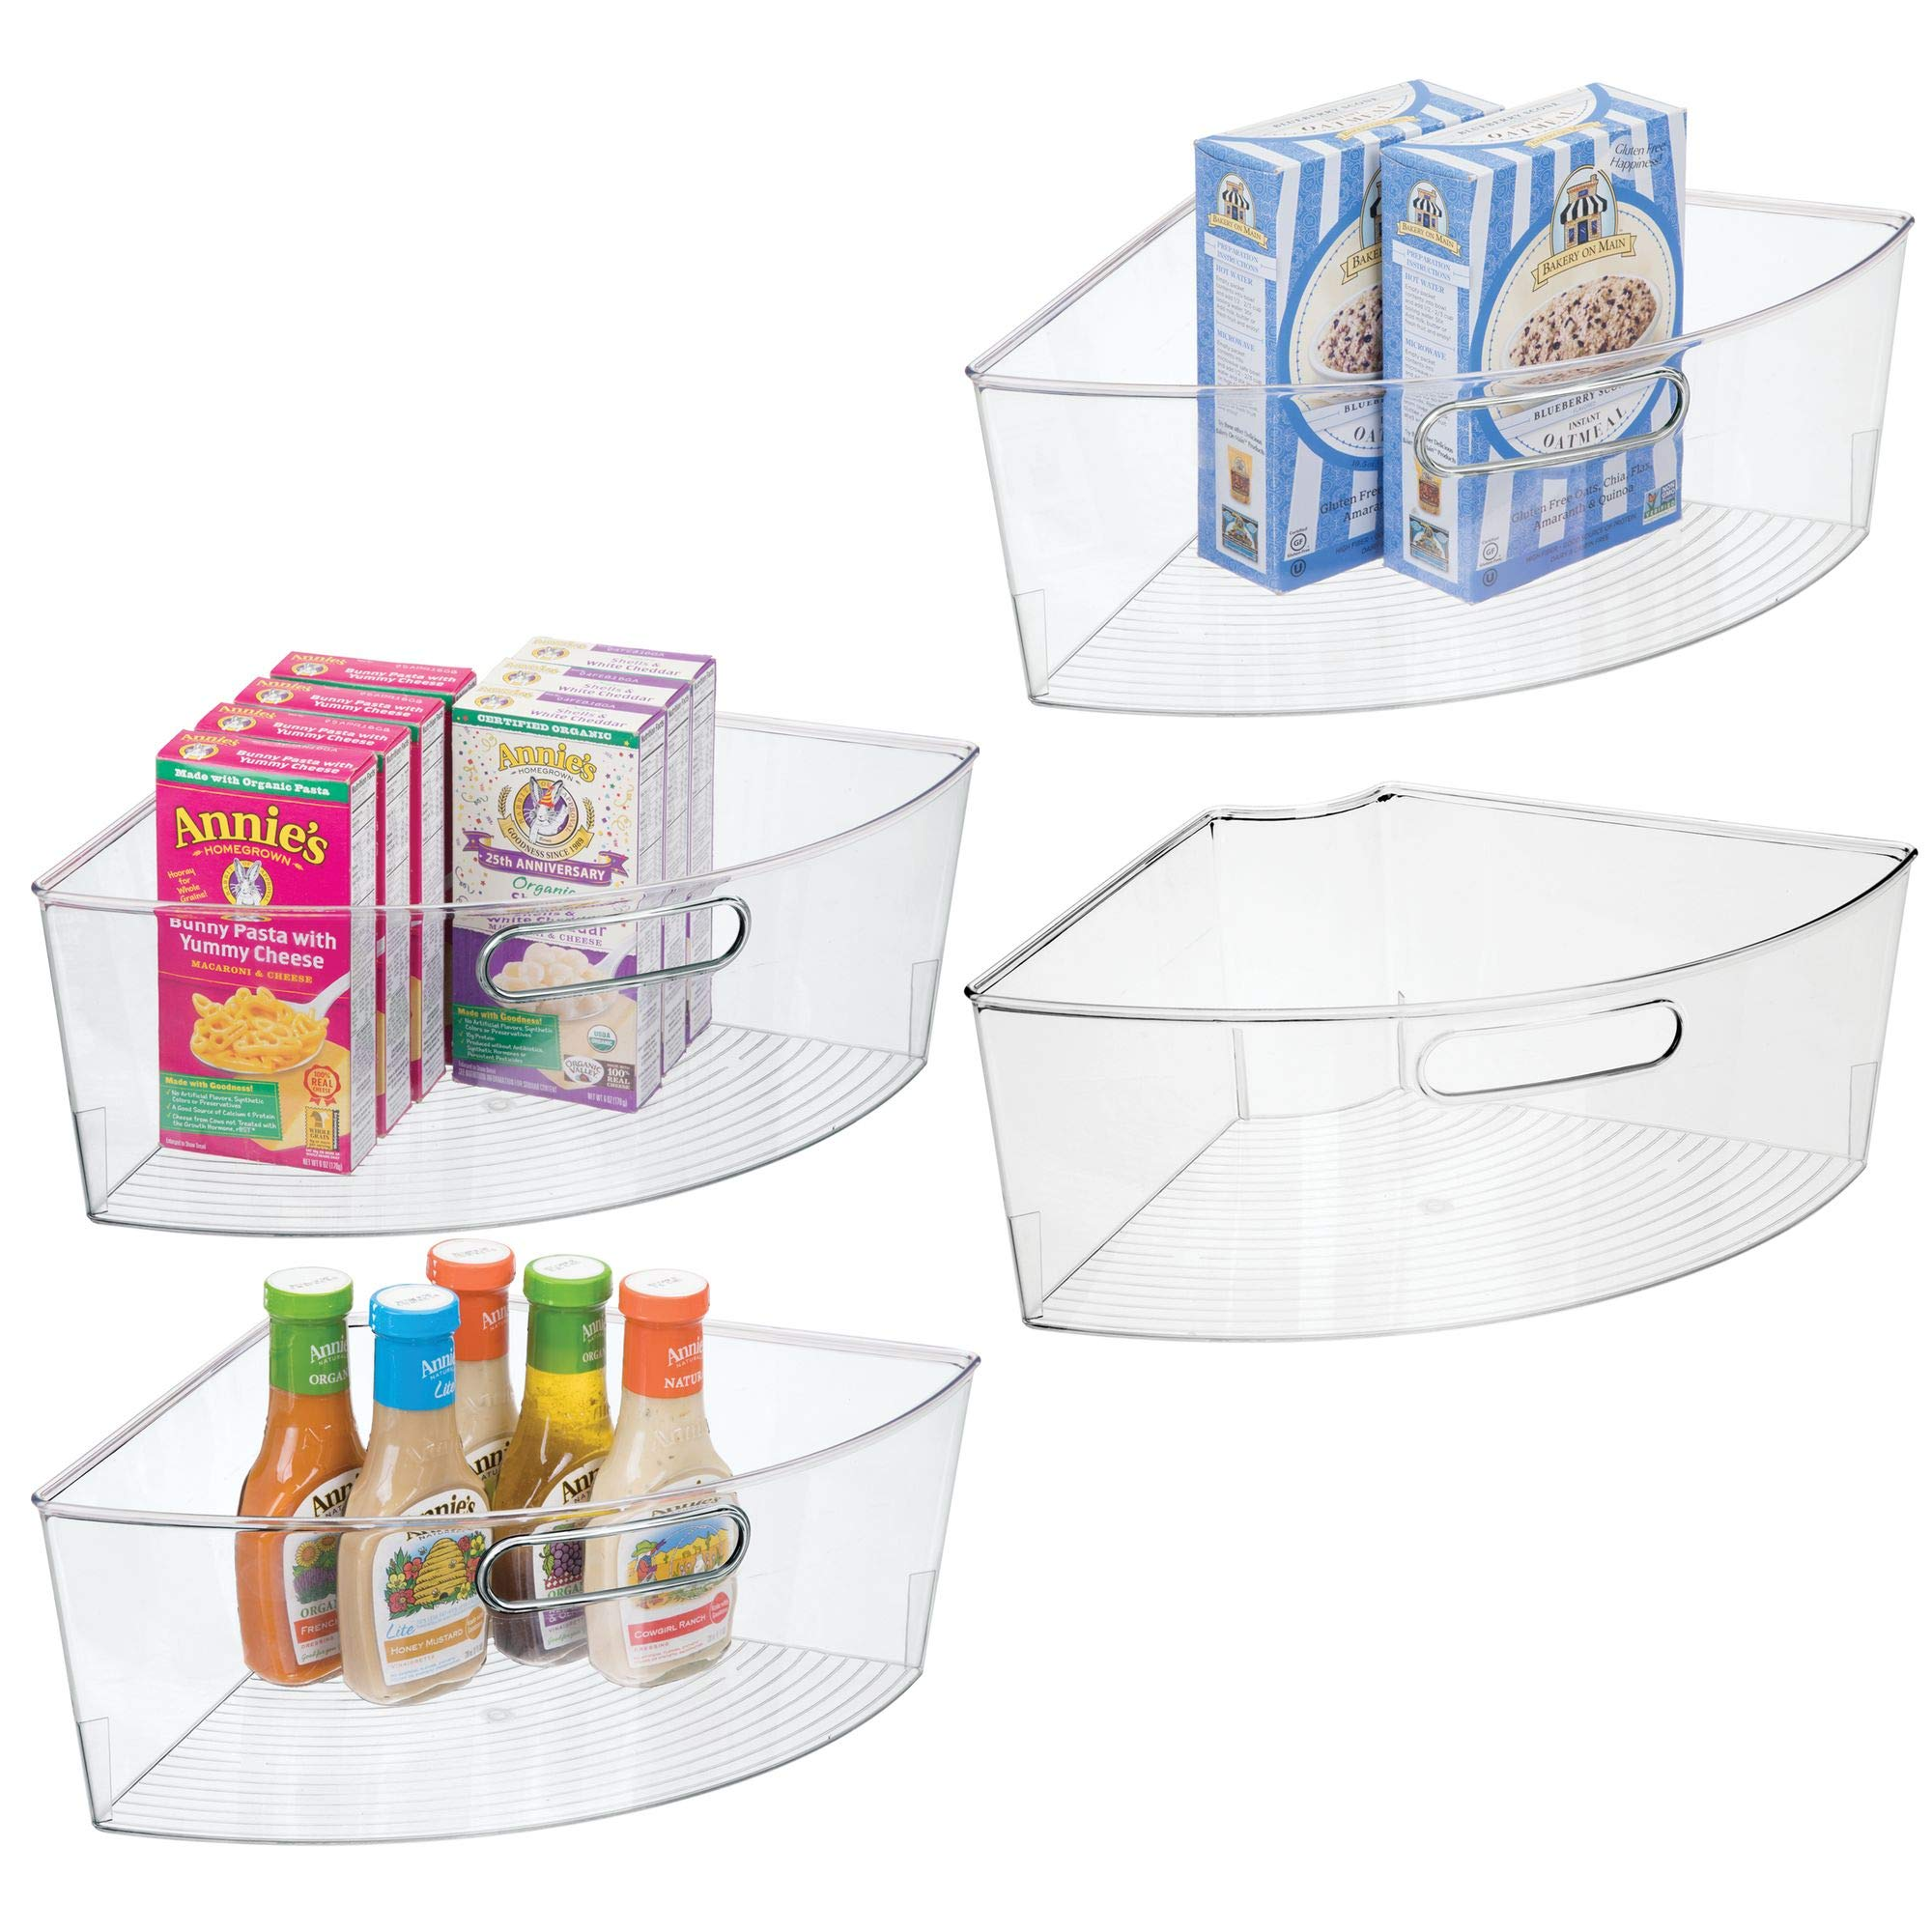 mDesign Kitchen Cabinet Plastic Lazy Susan Storage Organizer Bins with Front Handle - Large Pie-Shaped 1/4 Wedge, 6'' Deep Container - Food Safe, BPA Free - Set of 4, Clear